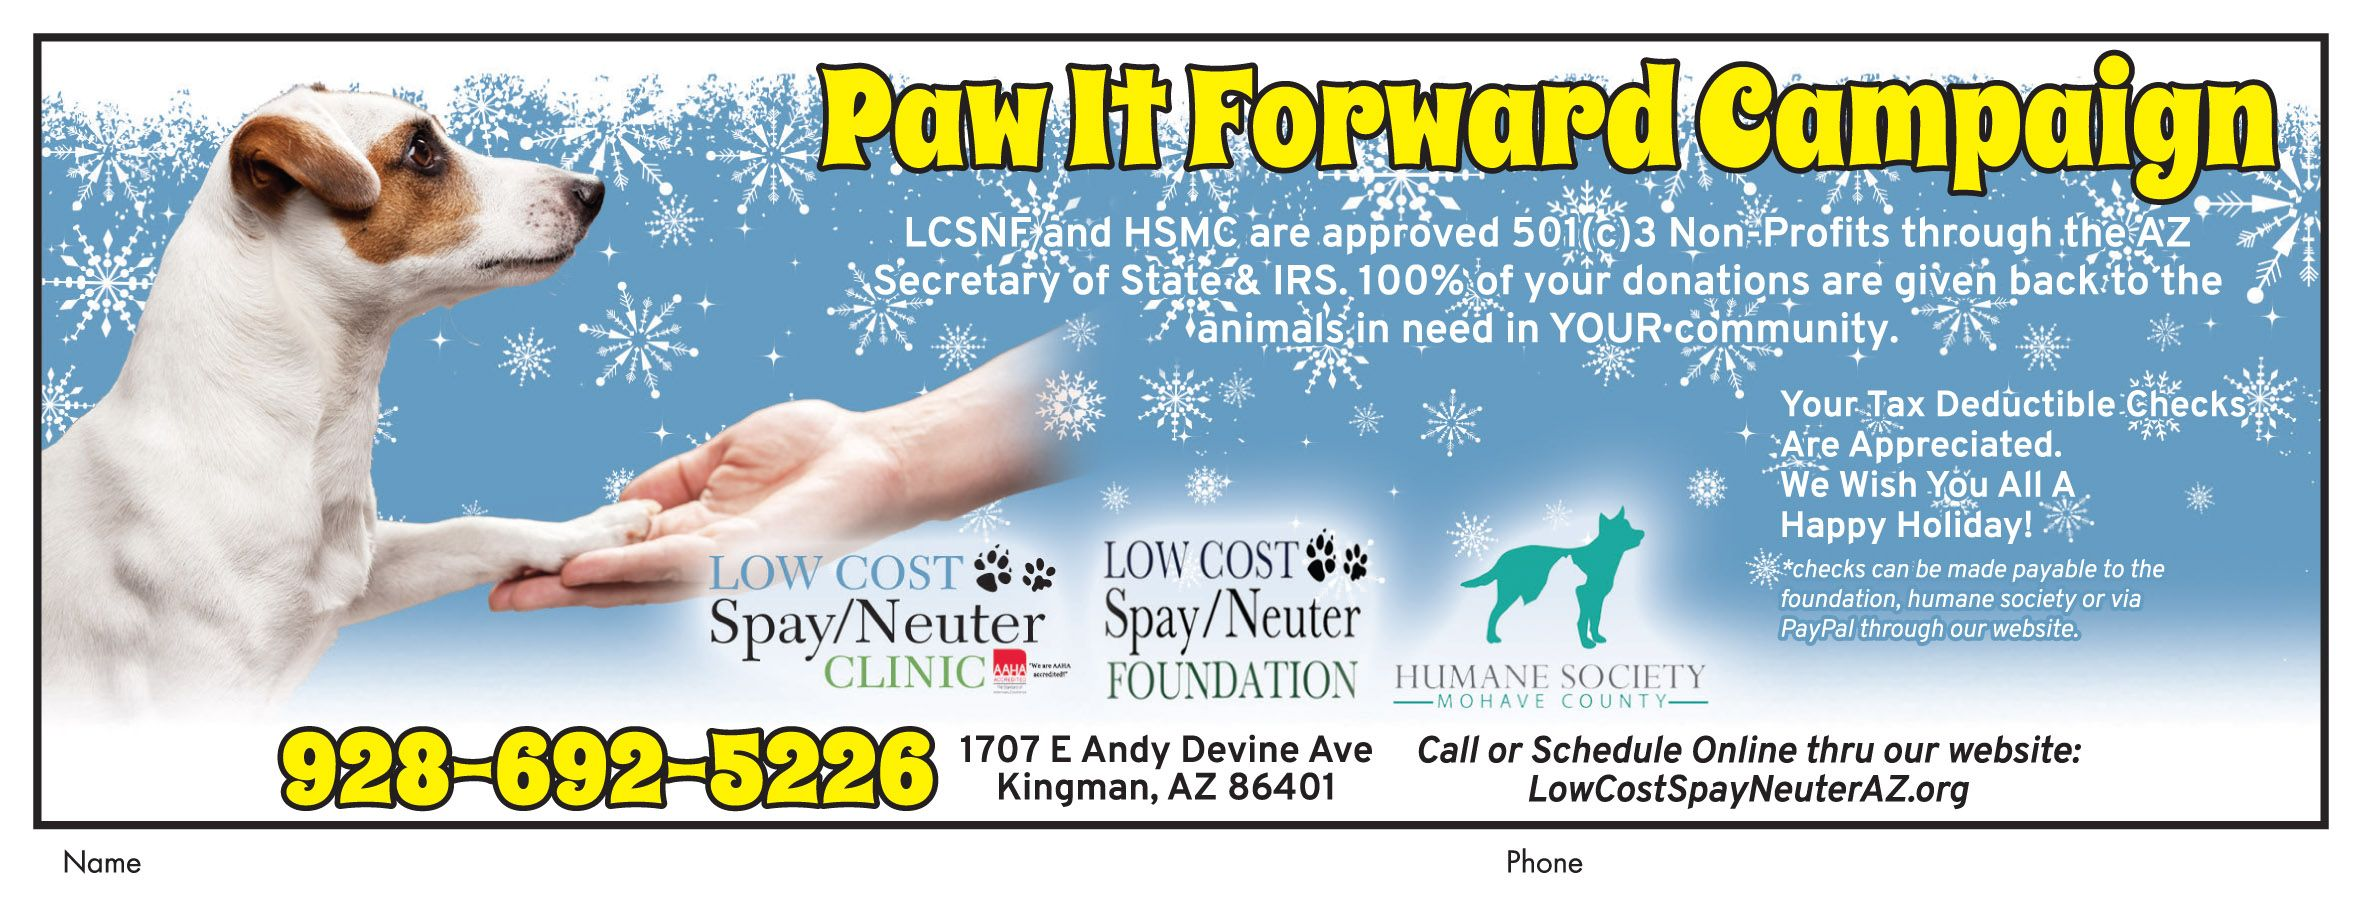 pawitforward at low cost spay/neuter clinic this year. donate before